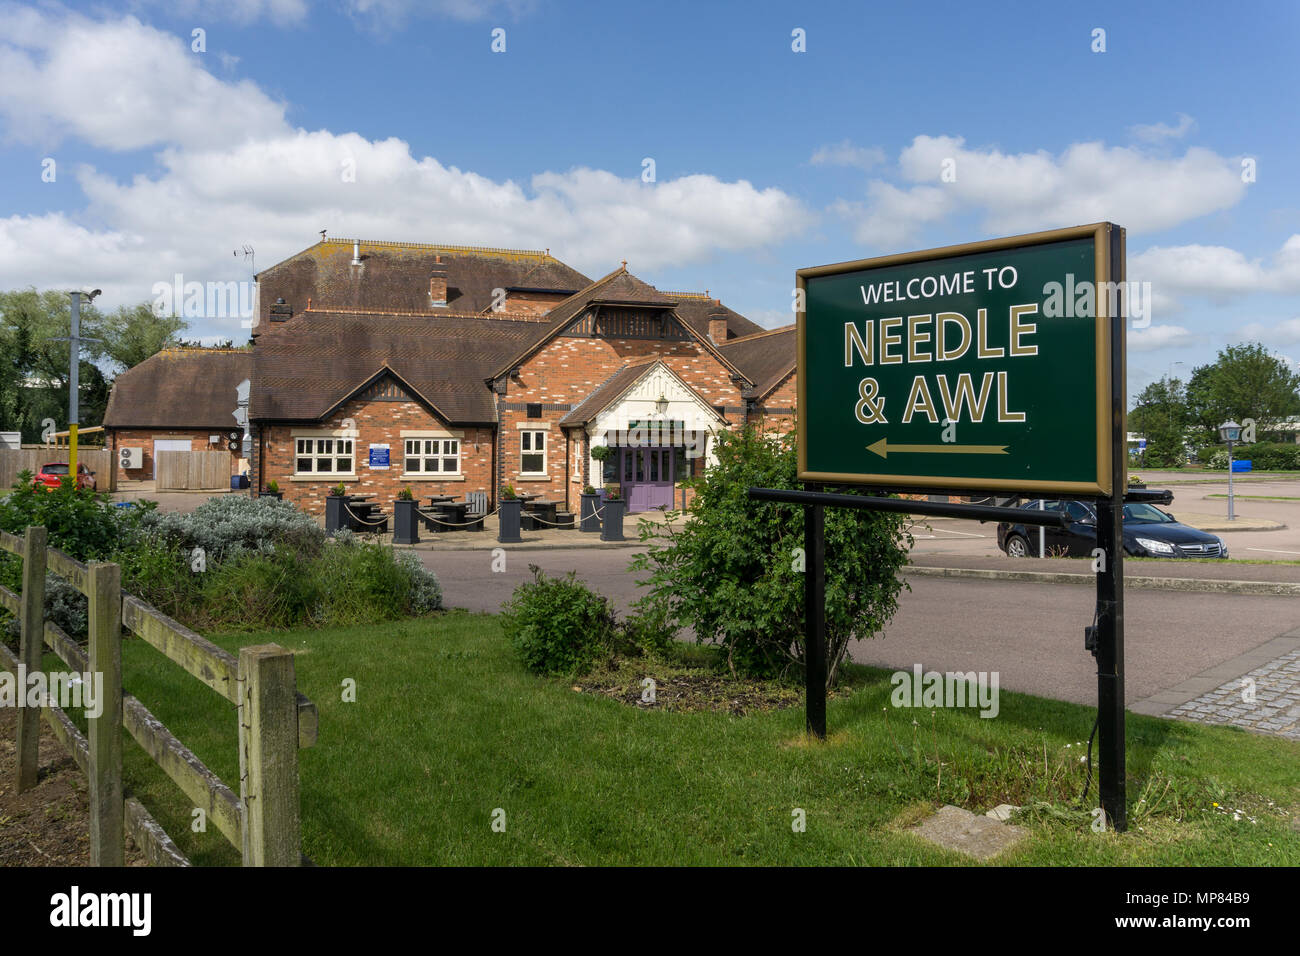 The Needle and Awl pub, part of the Hungry Horse chain of restaurants, Rushden Lakes, Northamptonshire, UK - Stock Image